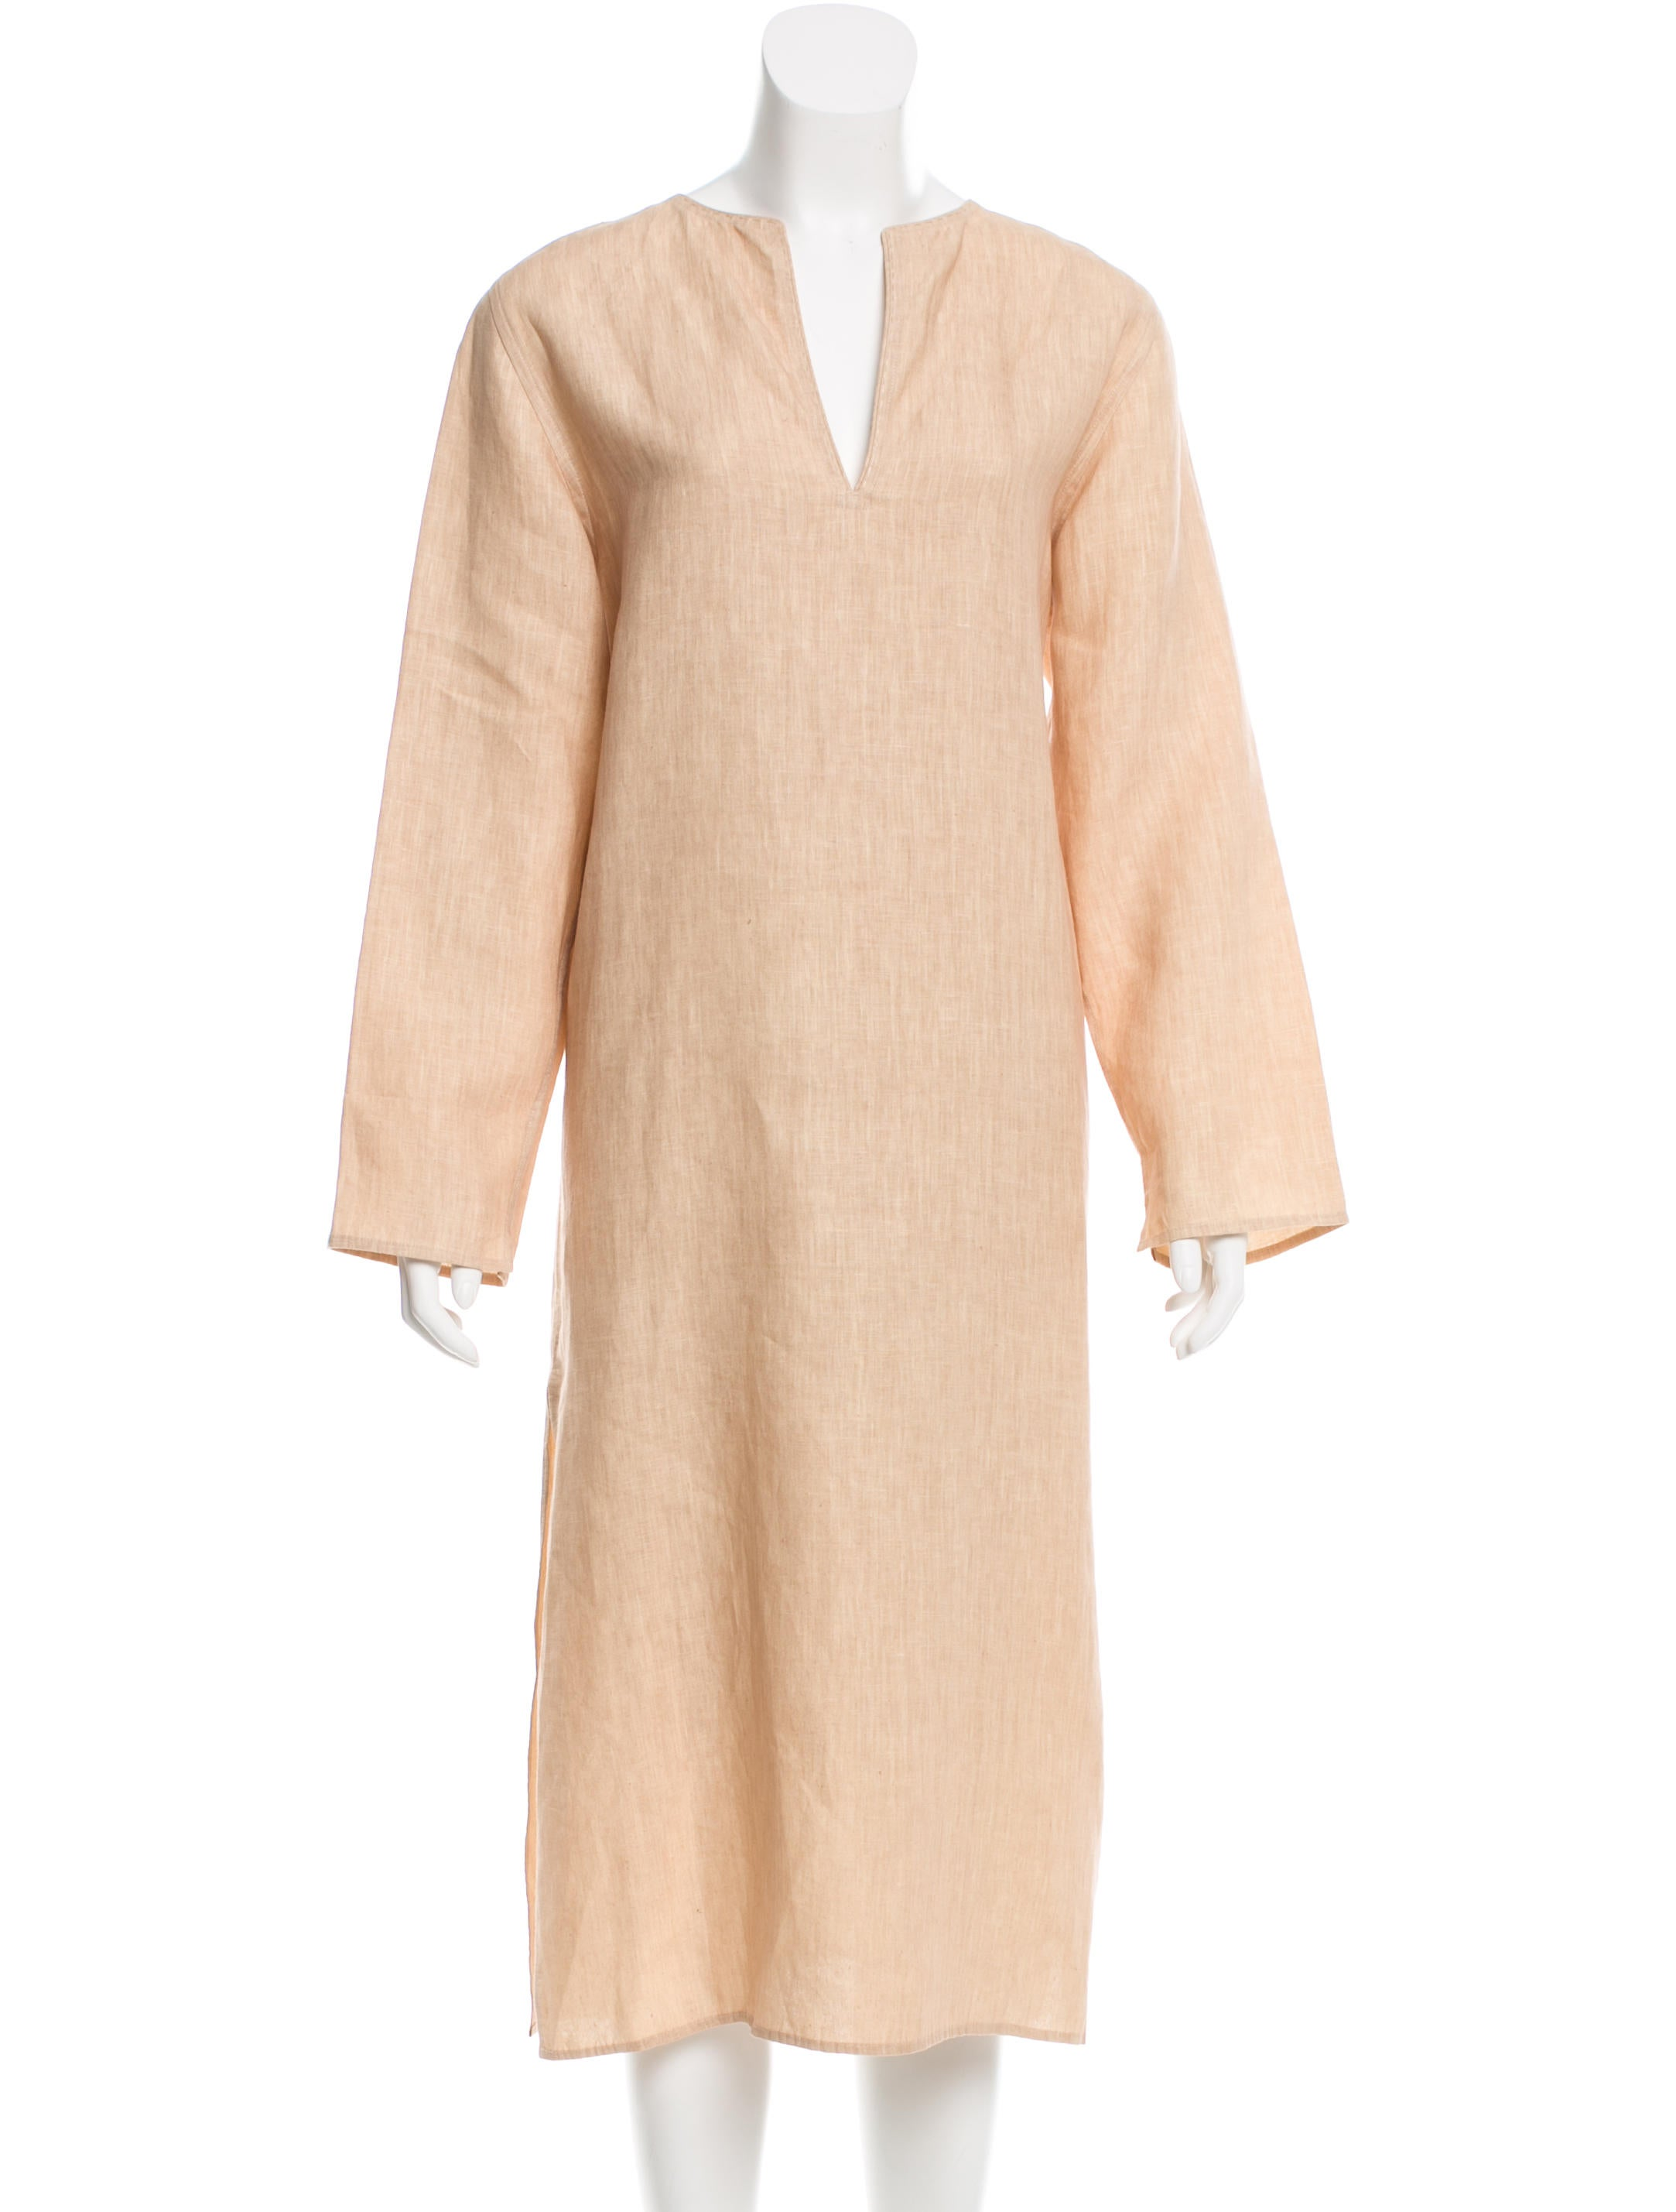 3598d43c0c9 Denis Colomb Linen Midi Dress w  Tags - Clothing - WDC20017